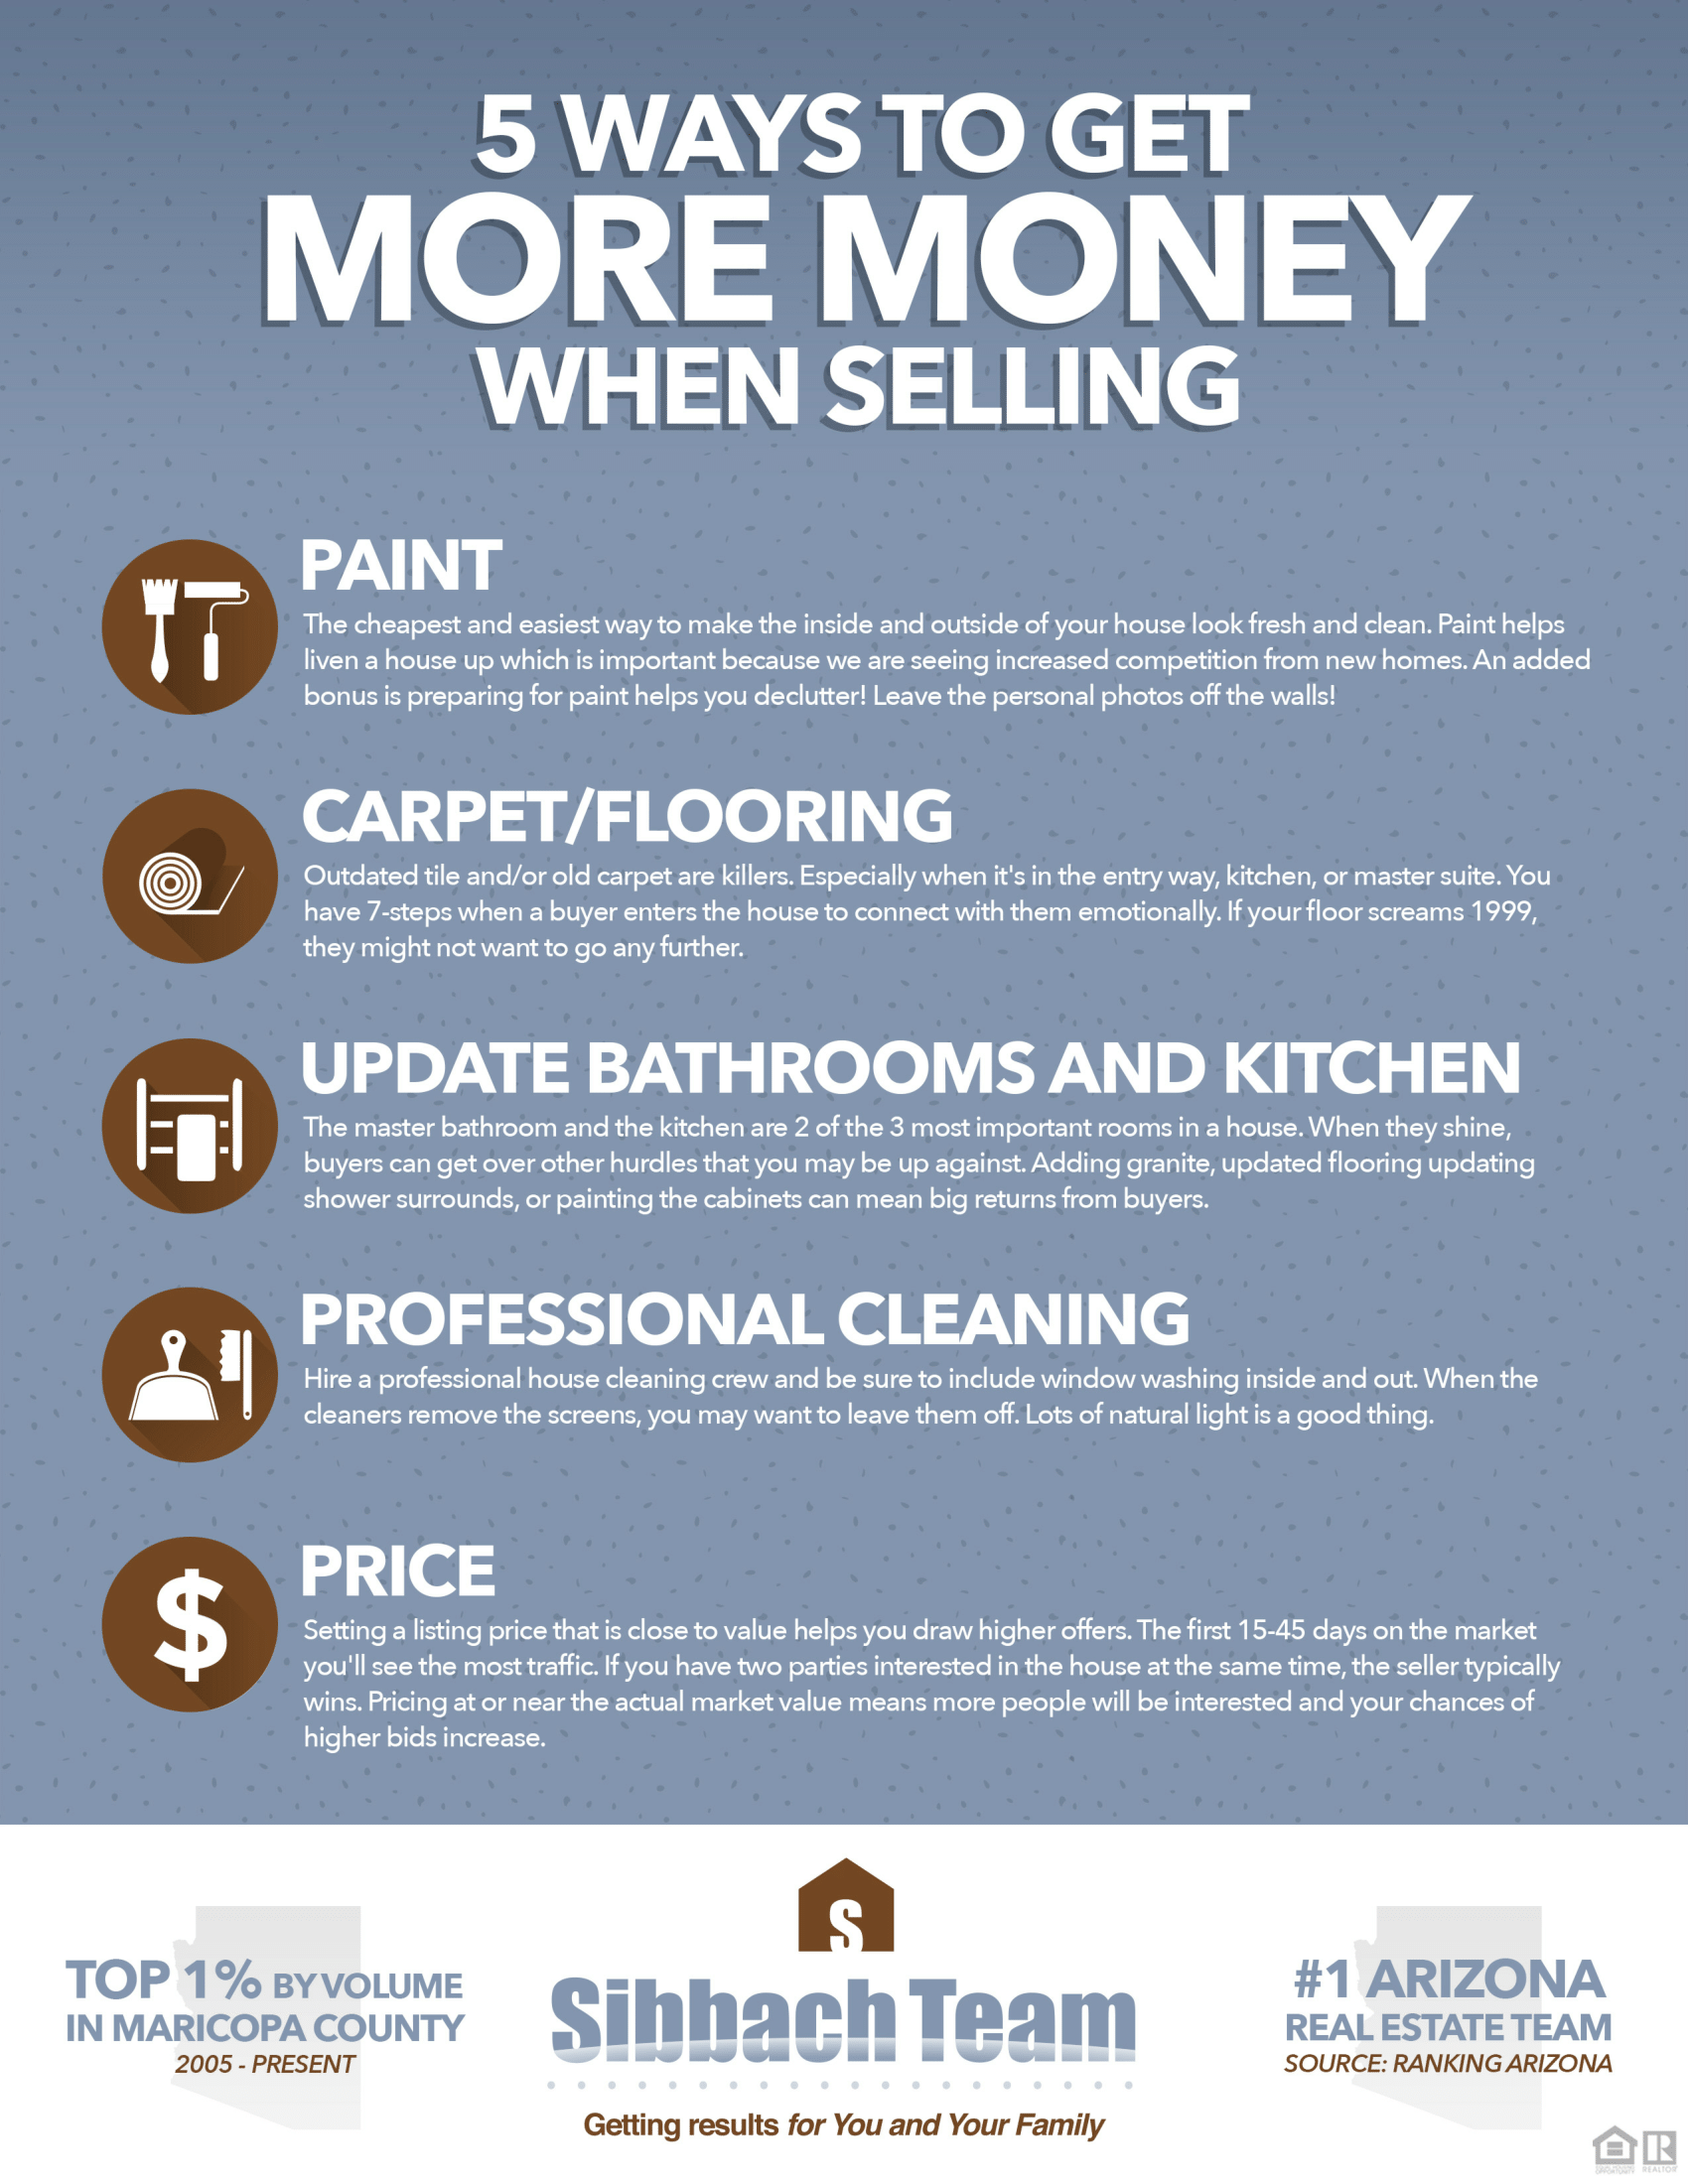 Get More Money When Selling